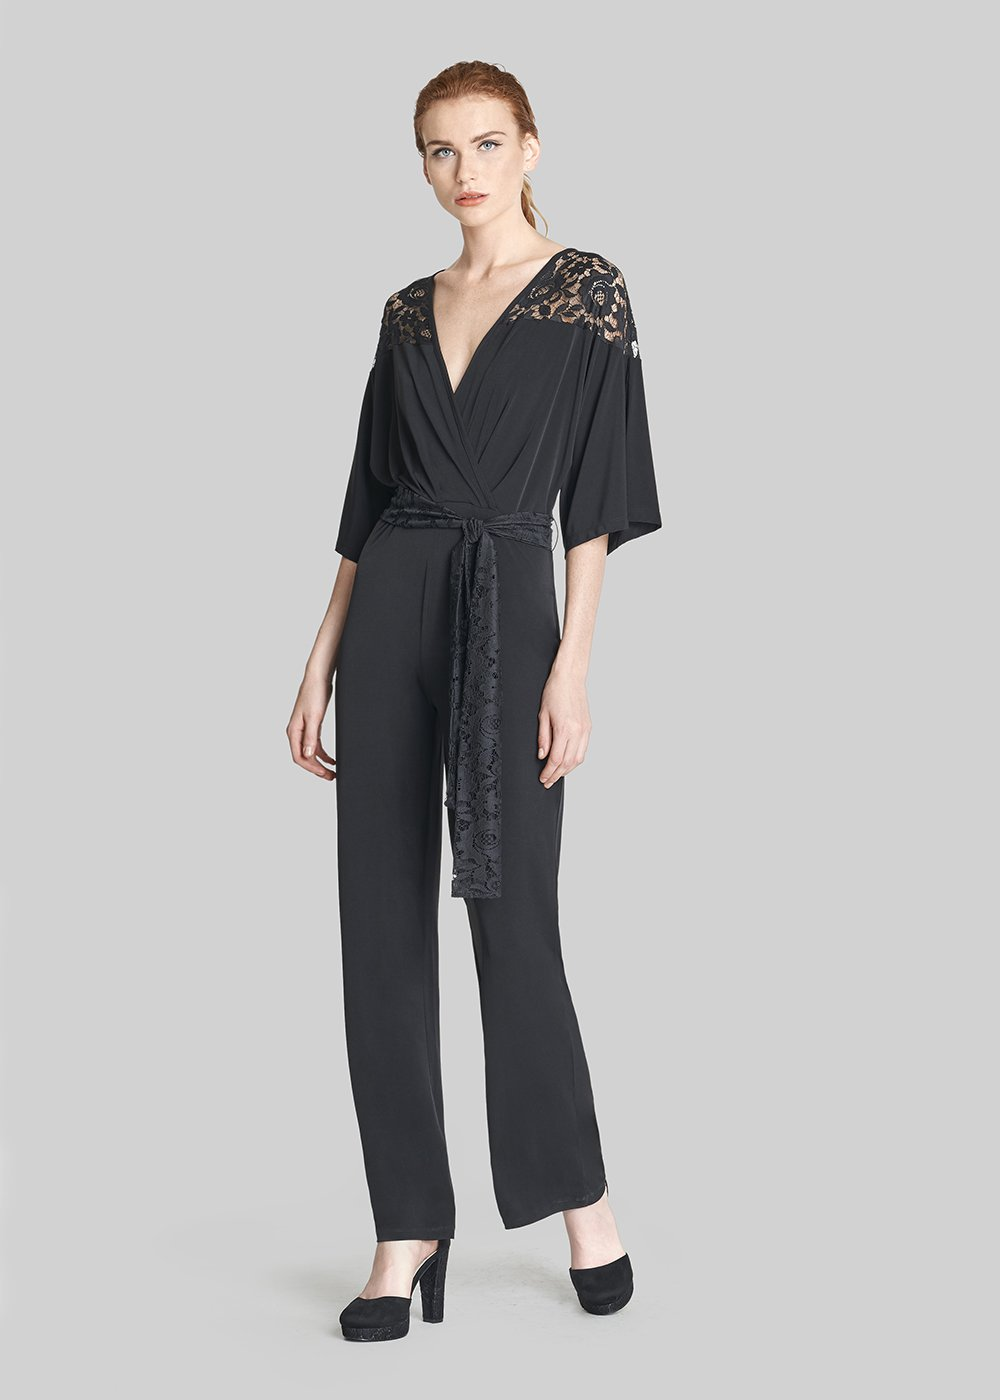 Taiger jersey jumpsuit with 3/4 sleeves - Black - Woman - Category image